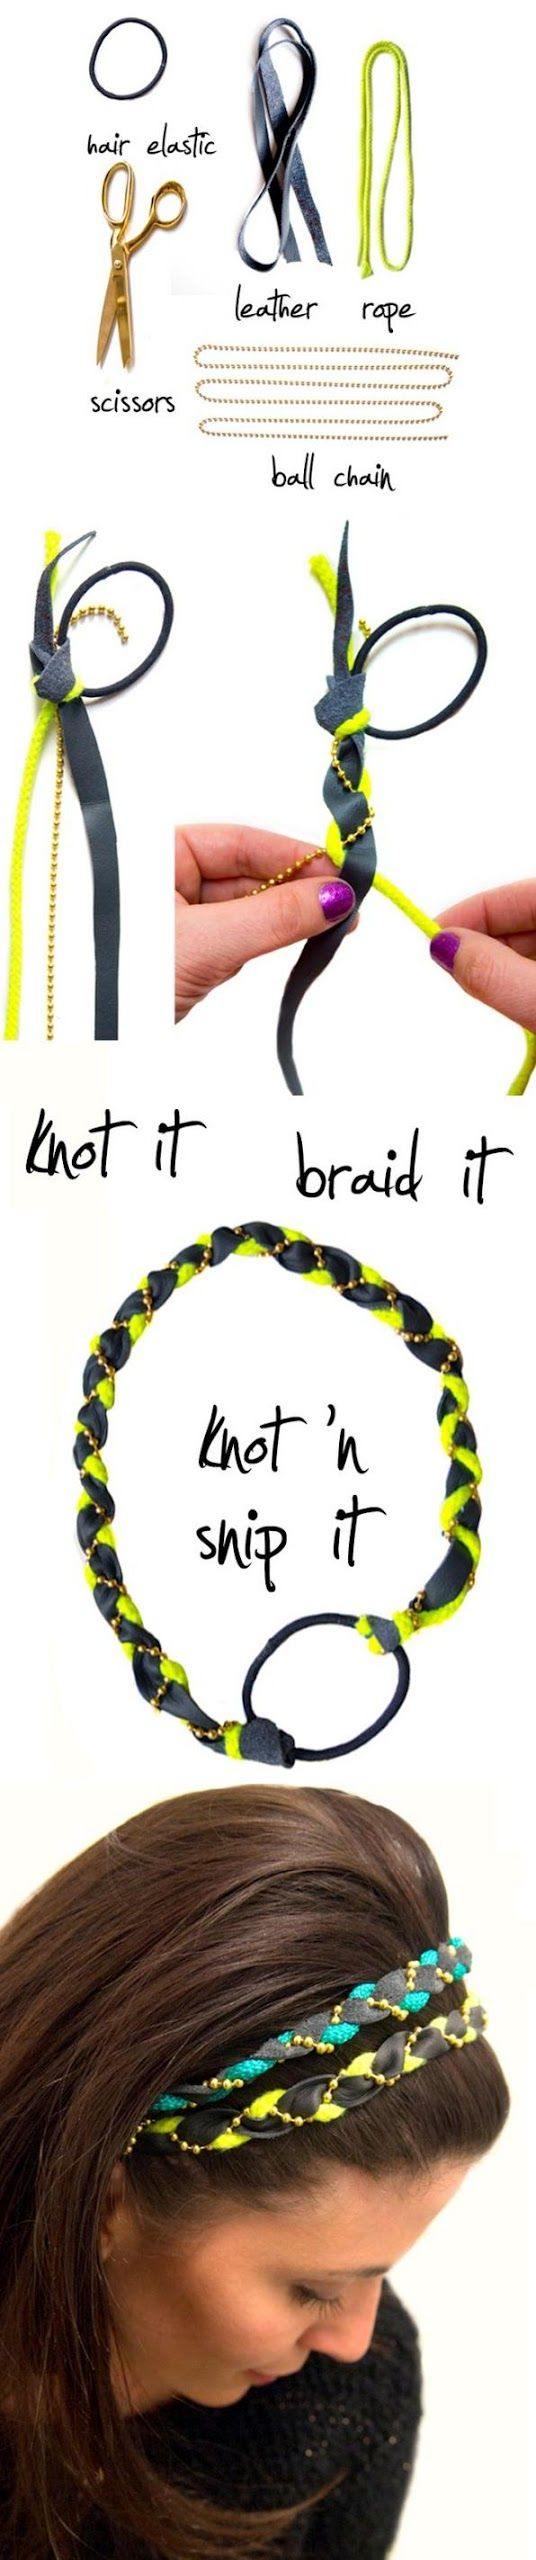 DIY: Quick & Easy Braided Headband - So cute...Wish my hair was long enough so I could wear.